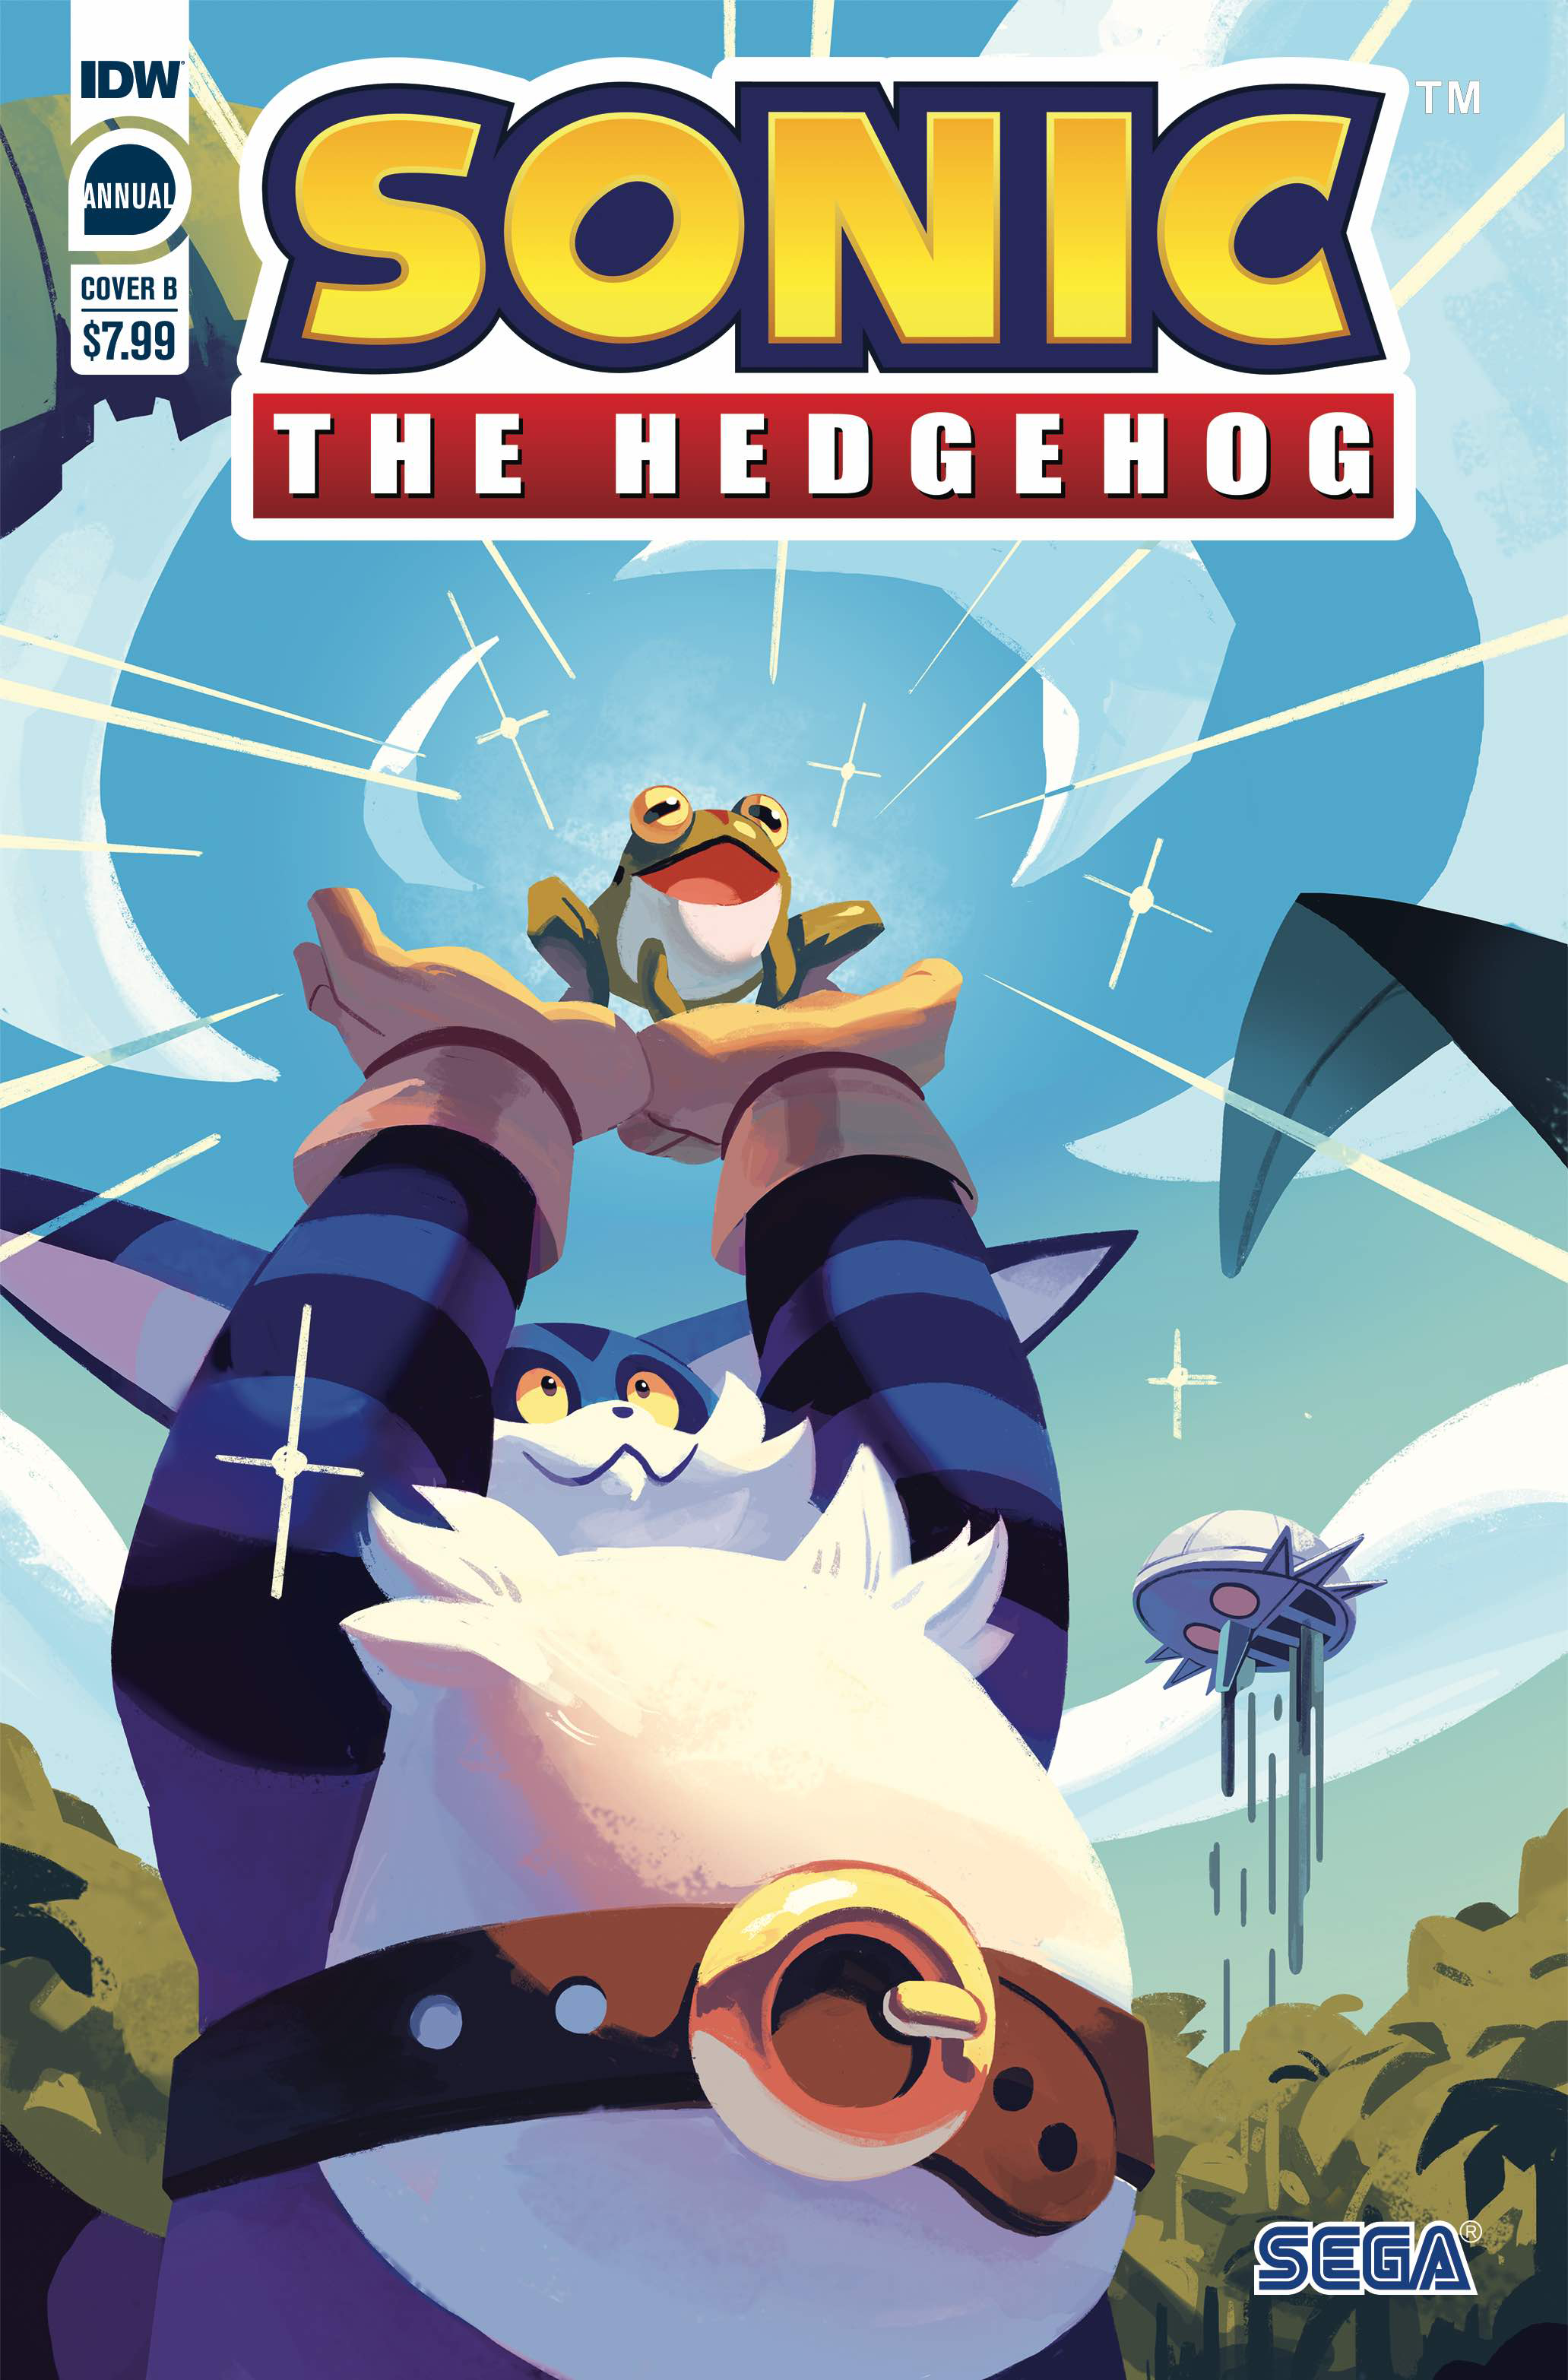 SONIC THE HEDGEHOG ANNUAL 2020 CVR B FOURDRAINE